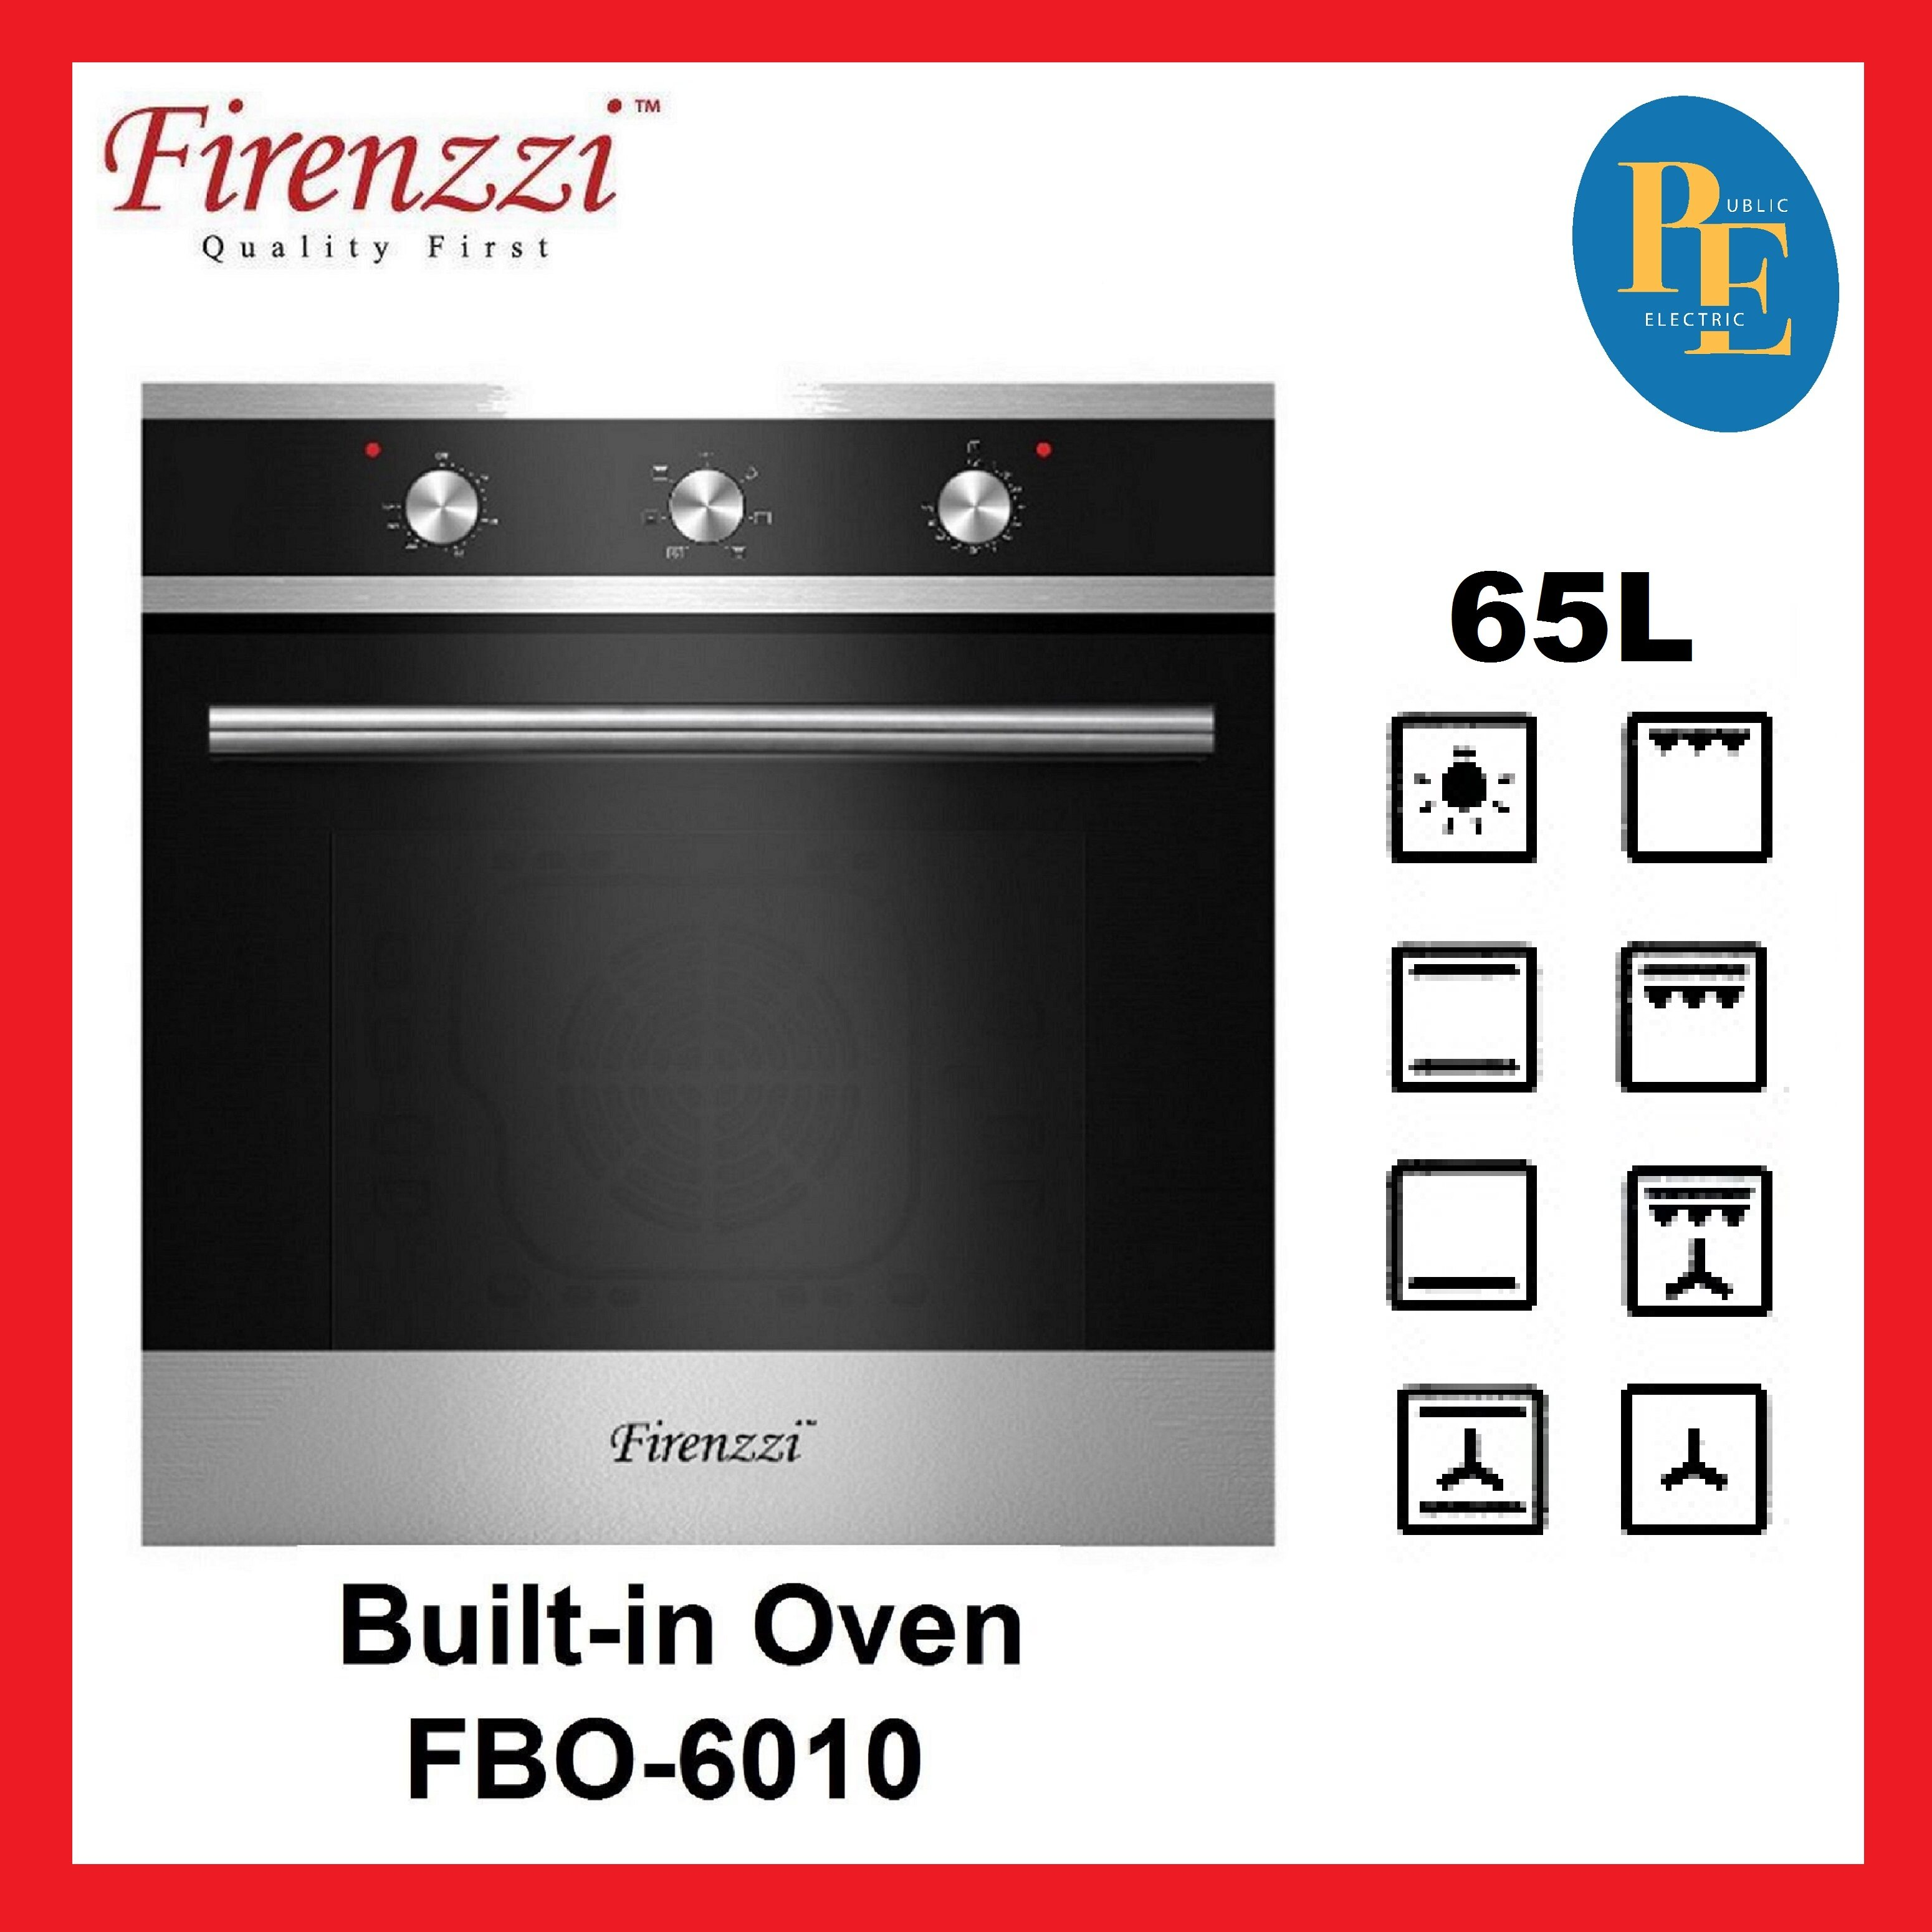 Firenzzi Mechanical Control 8 Functions Buint-in Oven 65L - FBO-6010